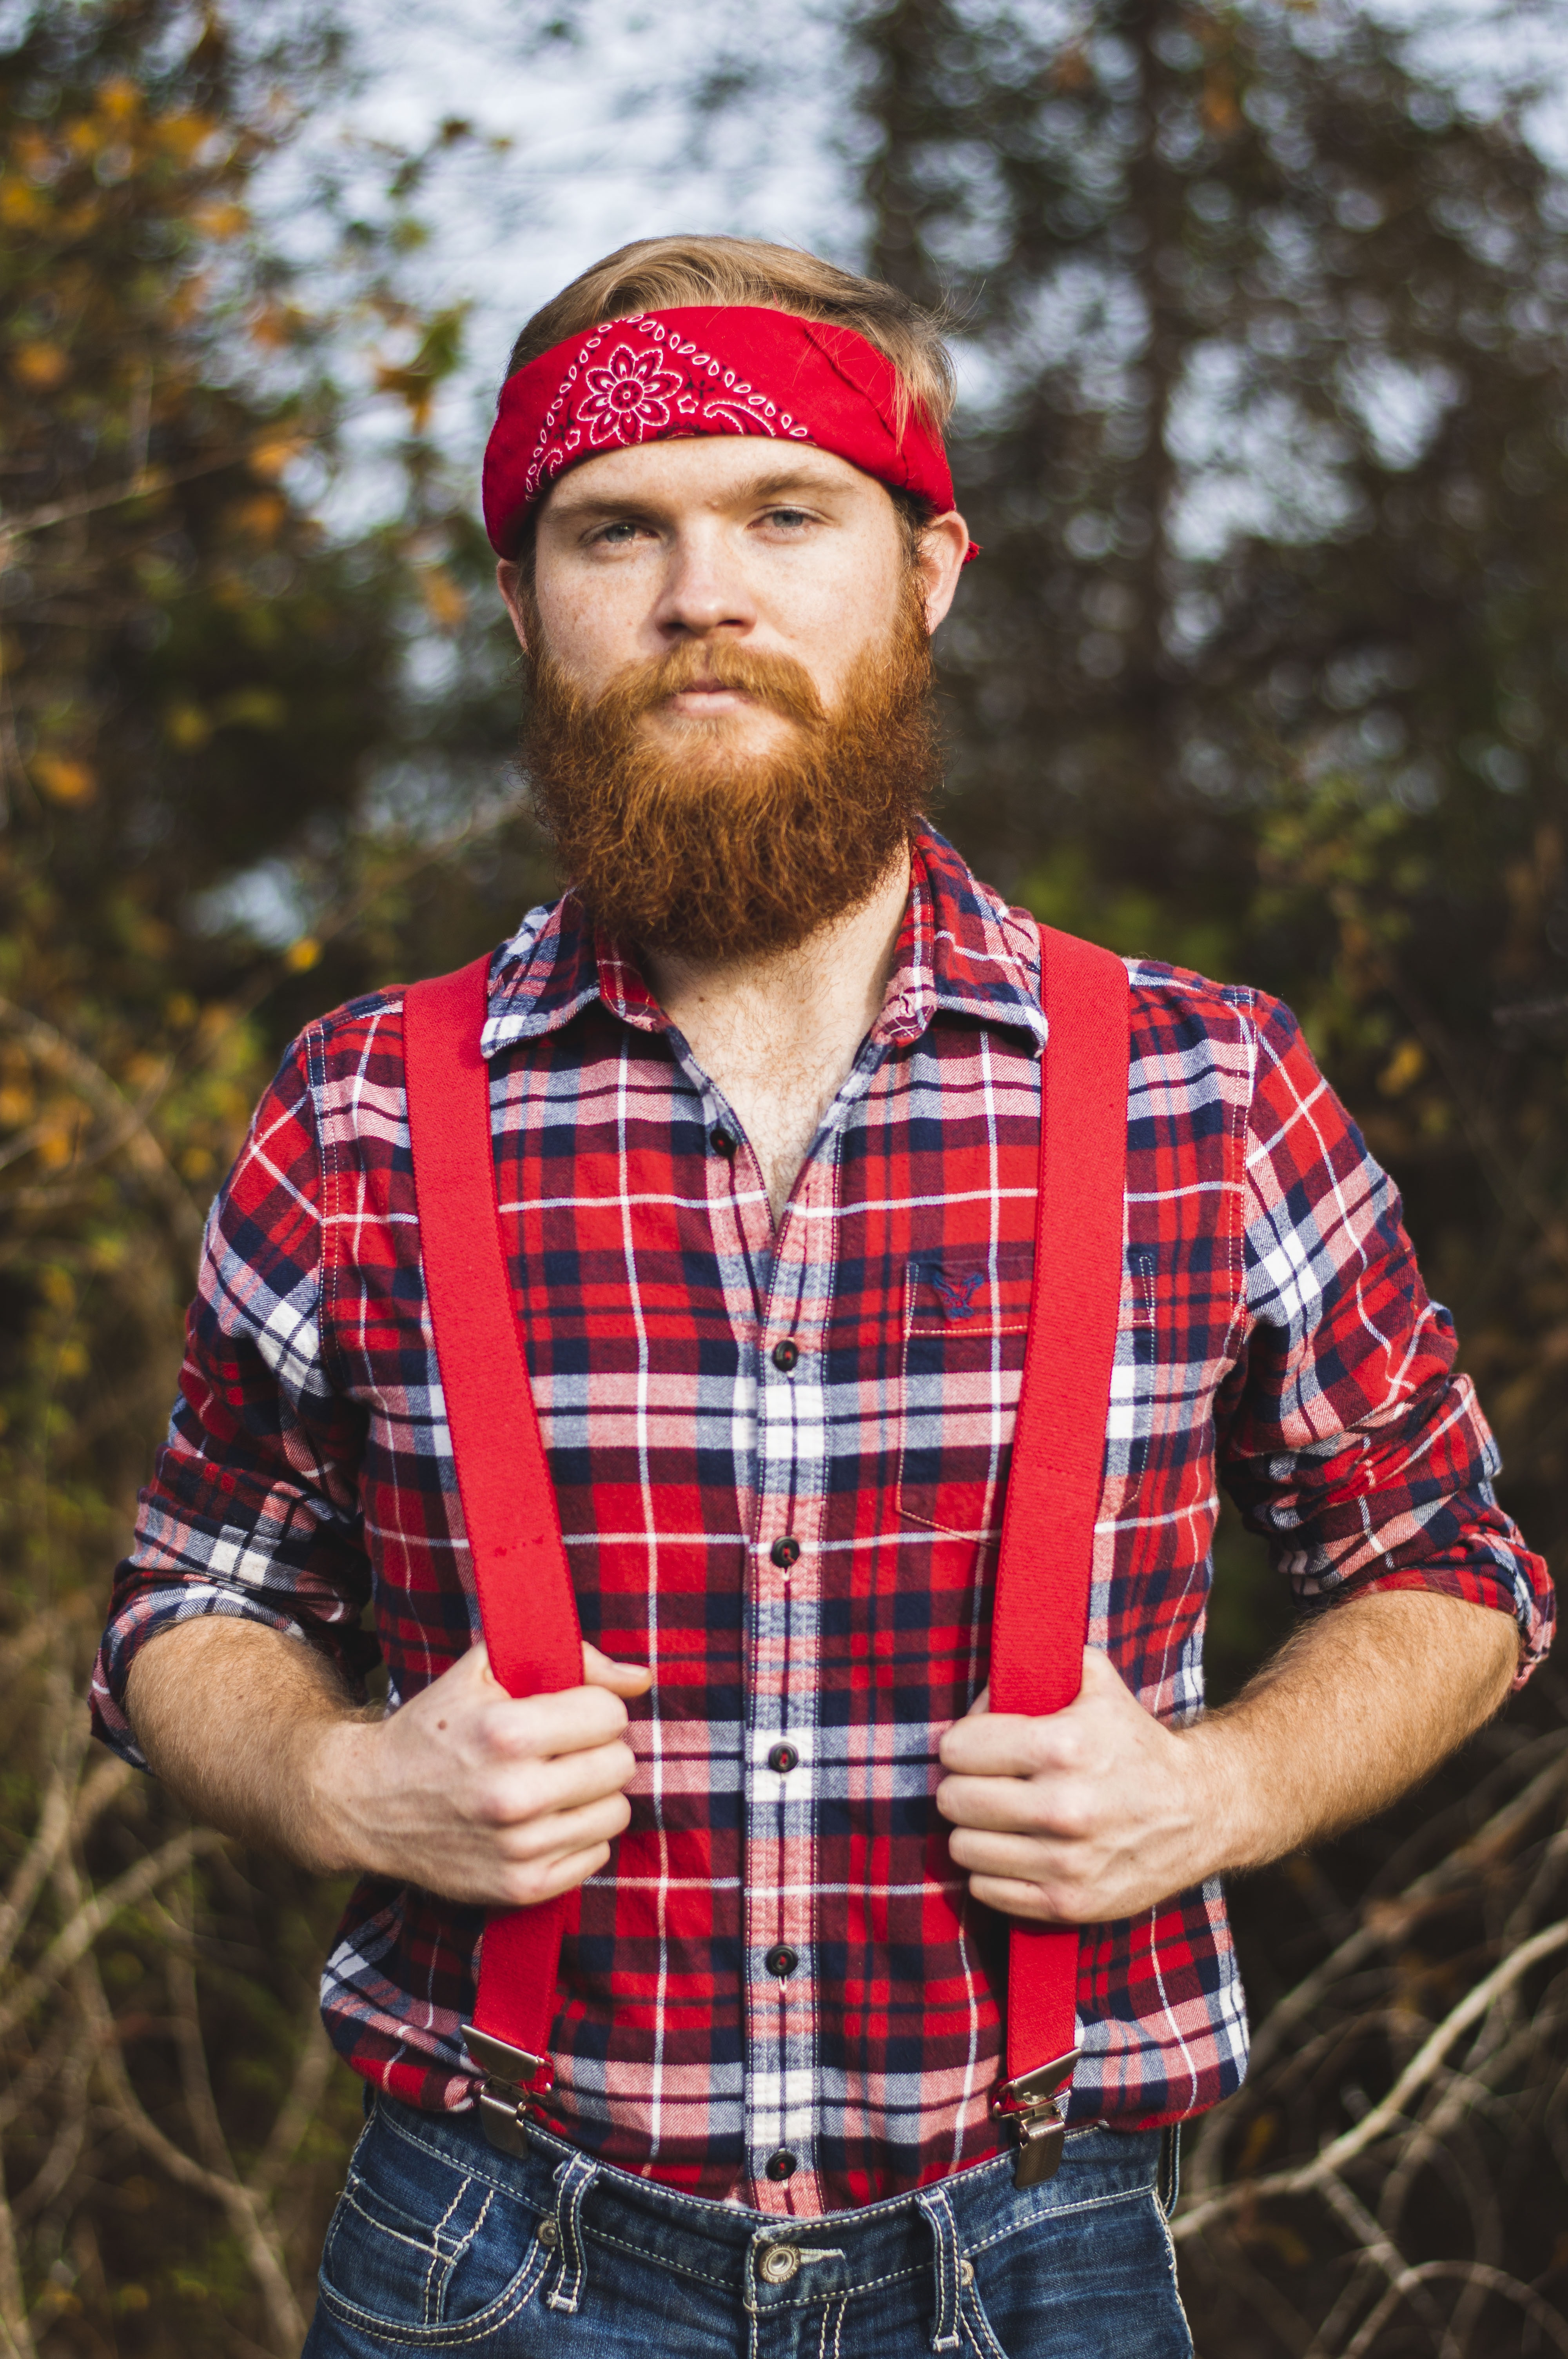 standing man wearing red and white floral kerchief close-up photo